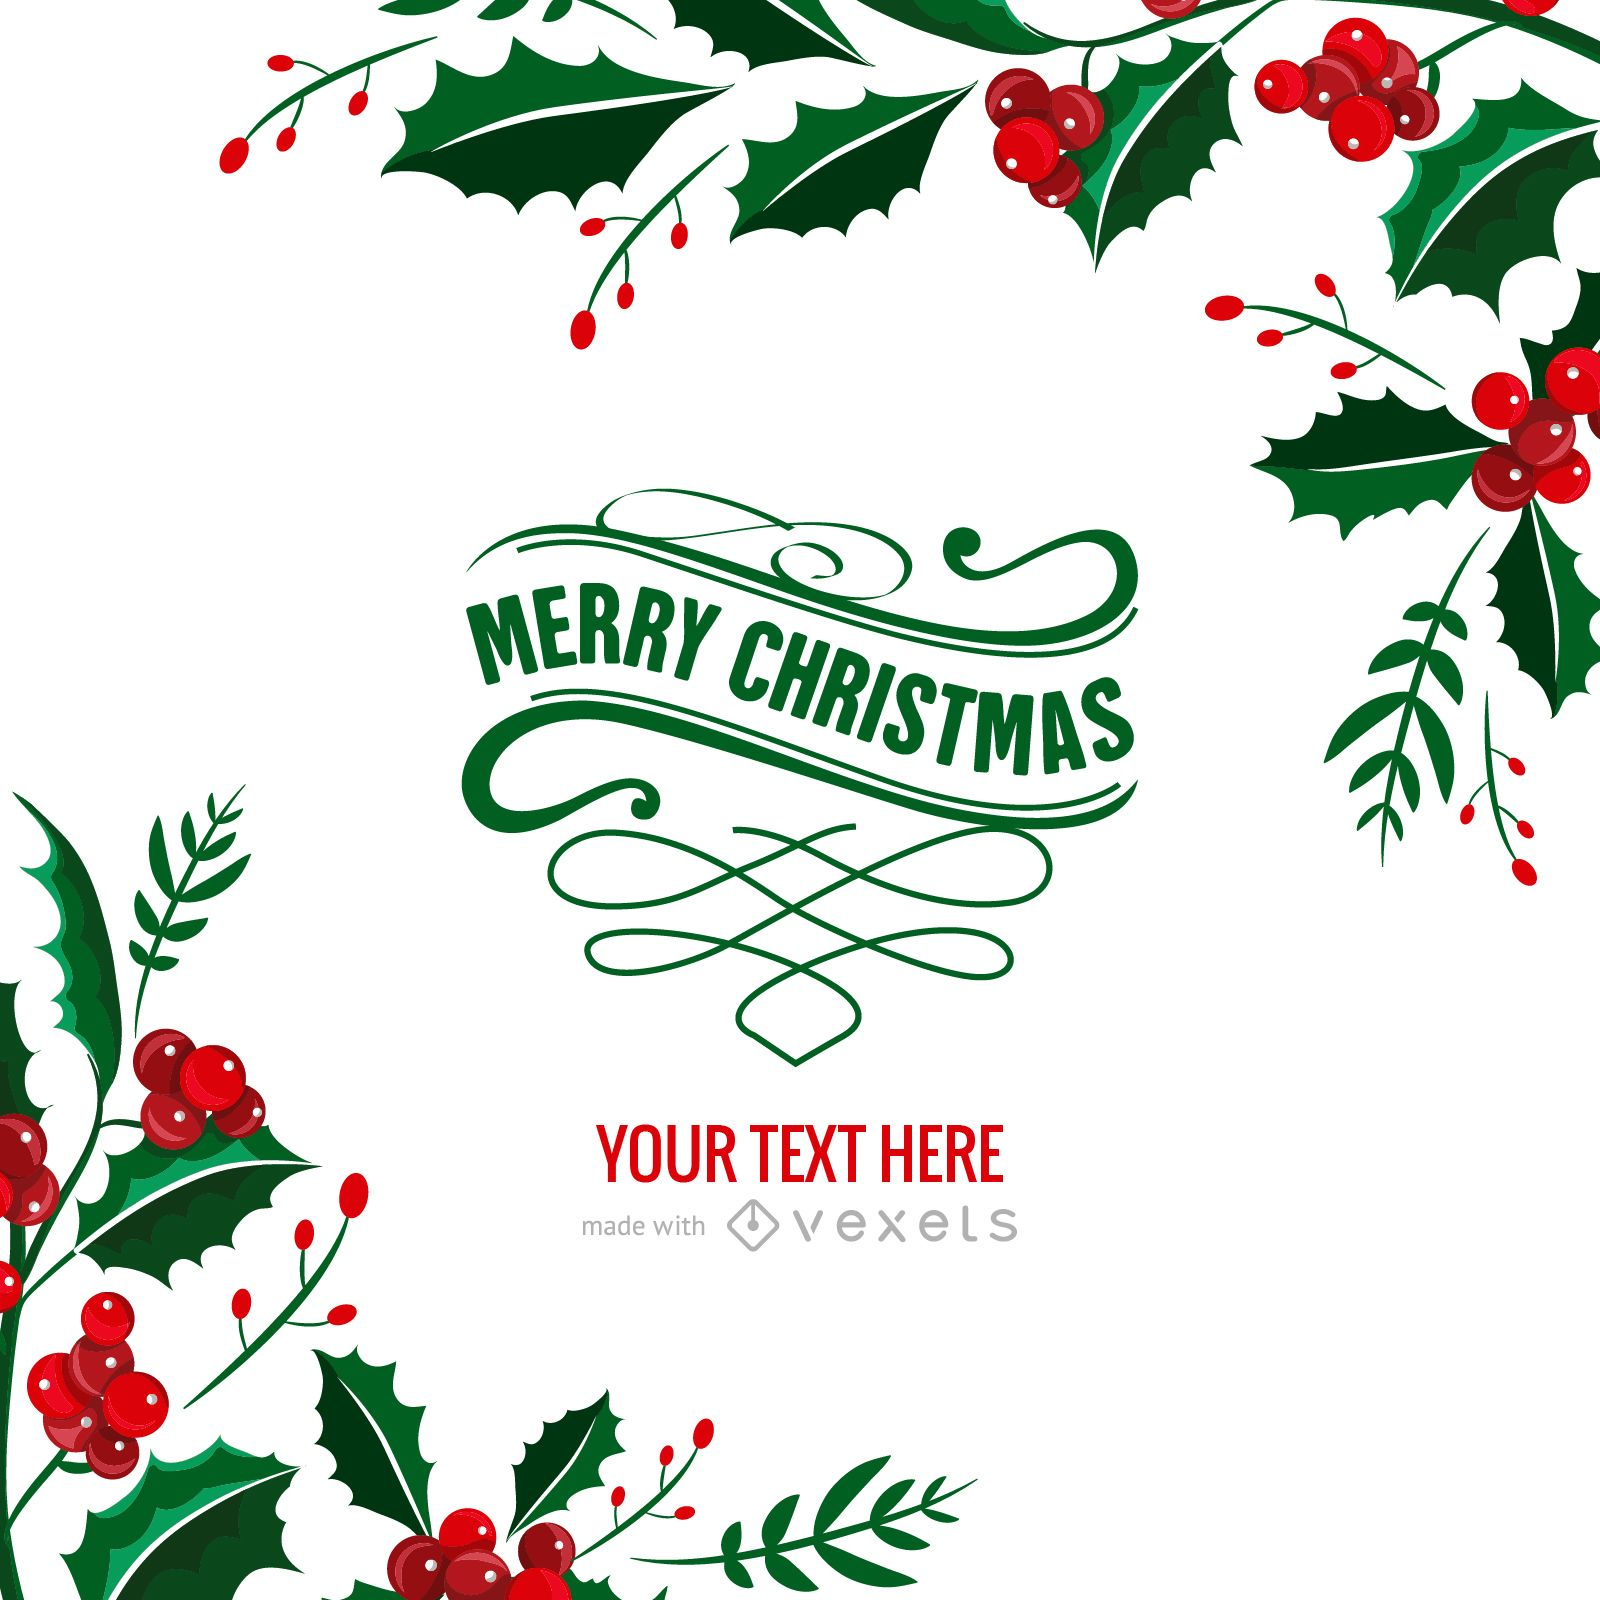 mistletoe christmas card maker download large image 1600x1600px - Christmas Photo Card Maker